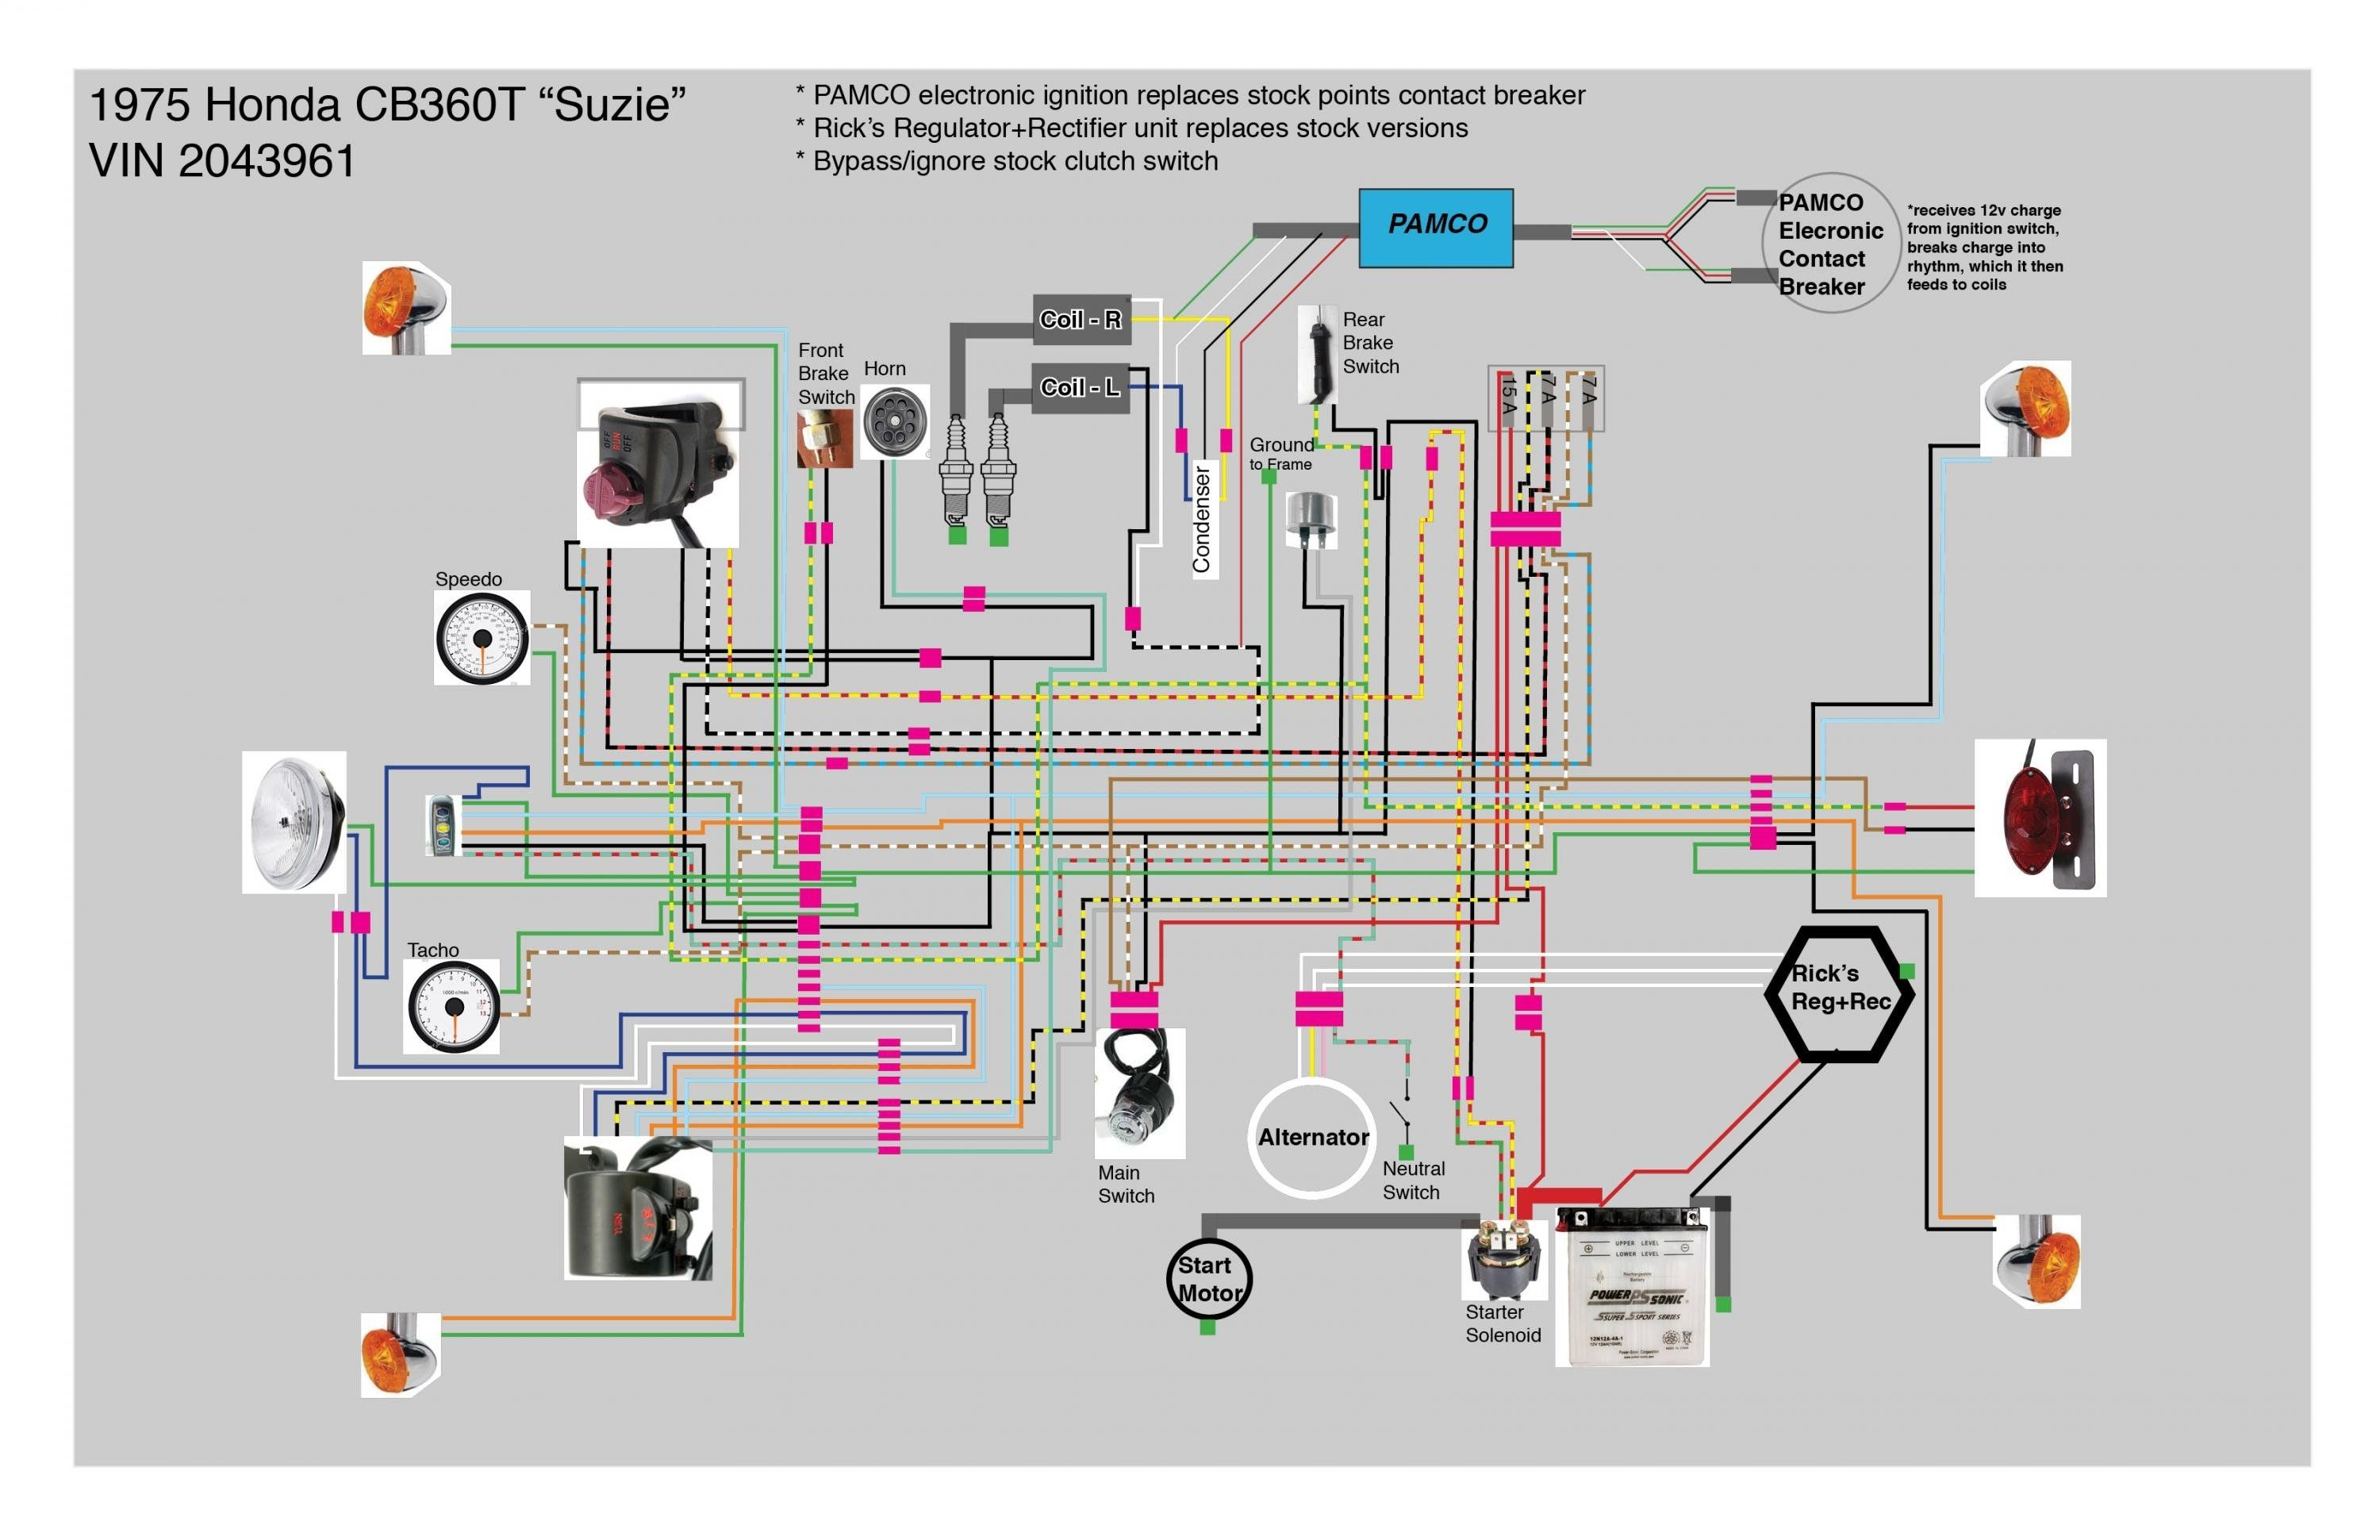 Cb360T - Better Cleaner Wiring Diagram intended for Cb360 ... on